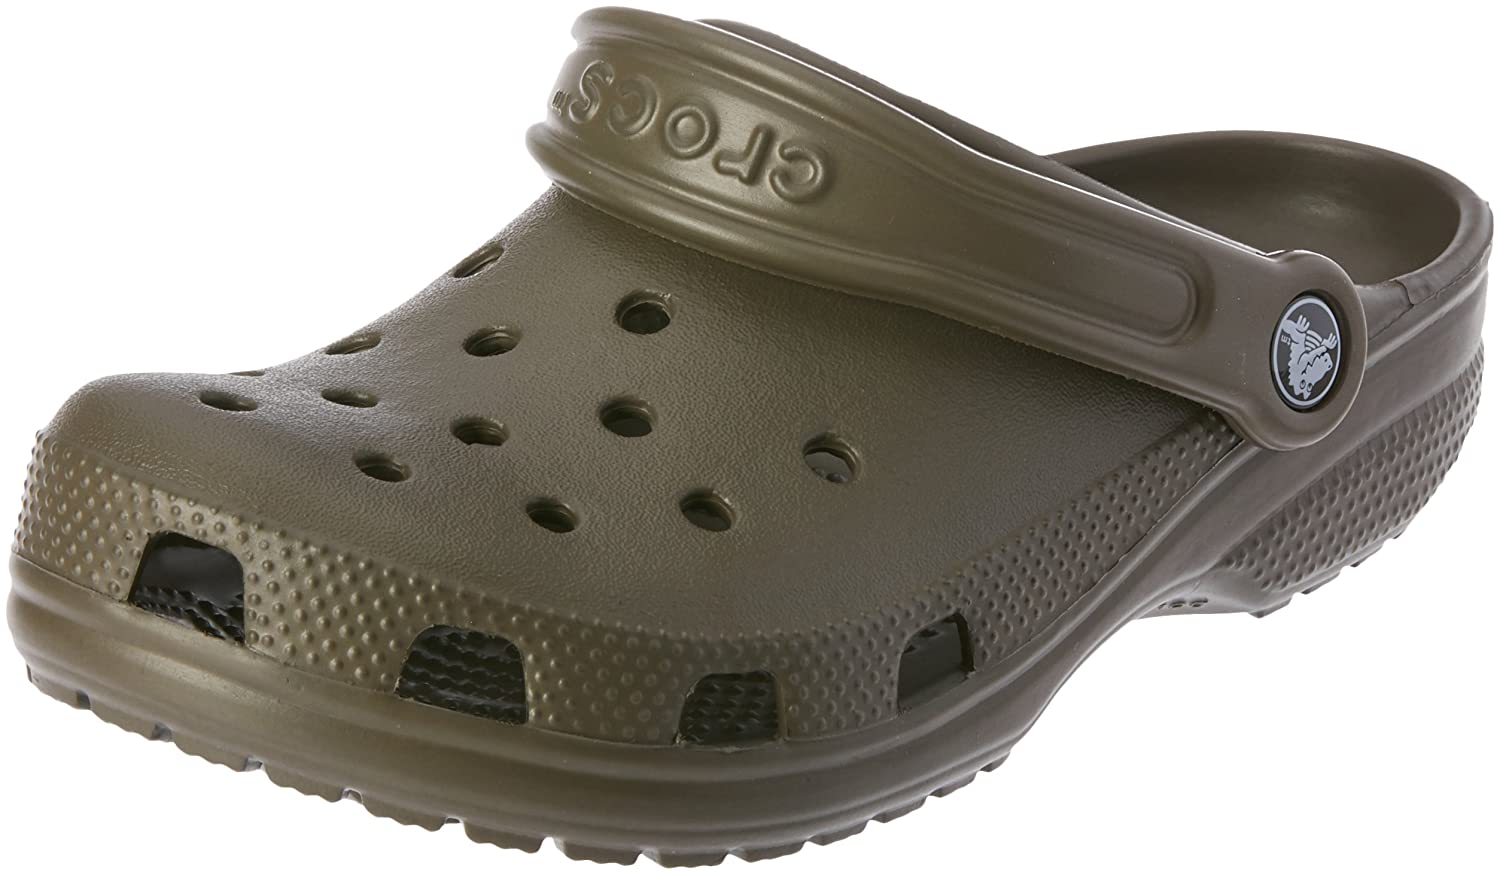 Crocs Marron Classic, B008KLJX8Q (Chocolate) Sabots Mixte Adulte Marron (Chocolate) 02f900e - conorscully.space